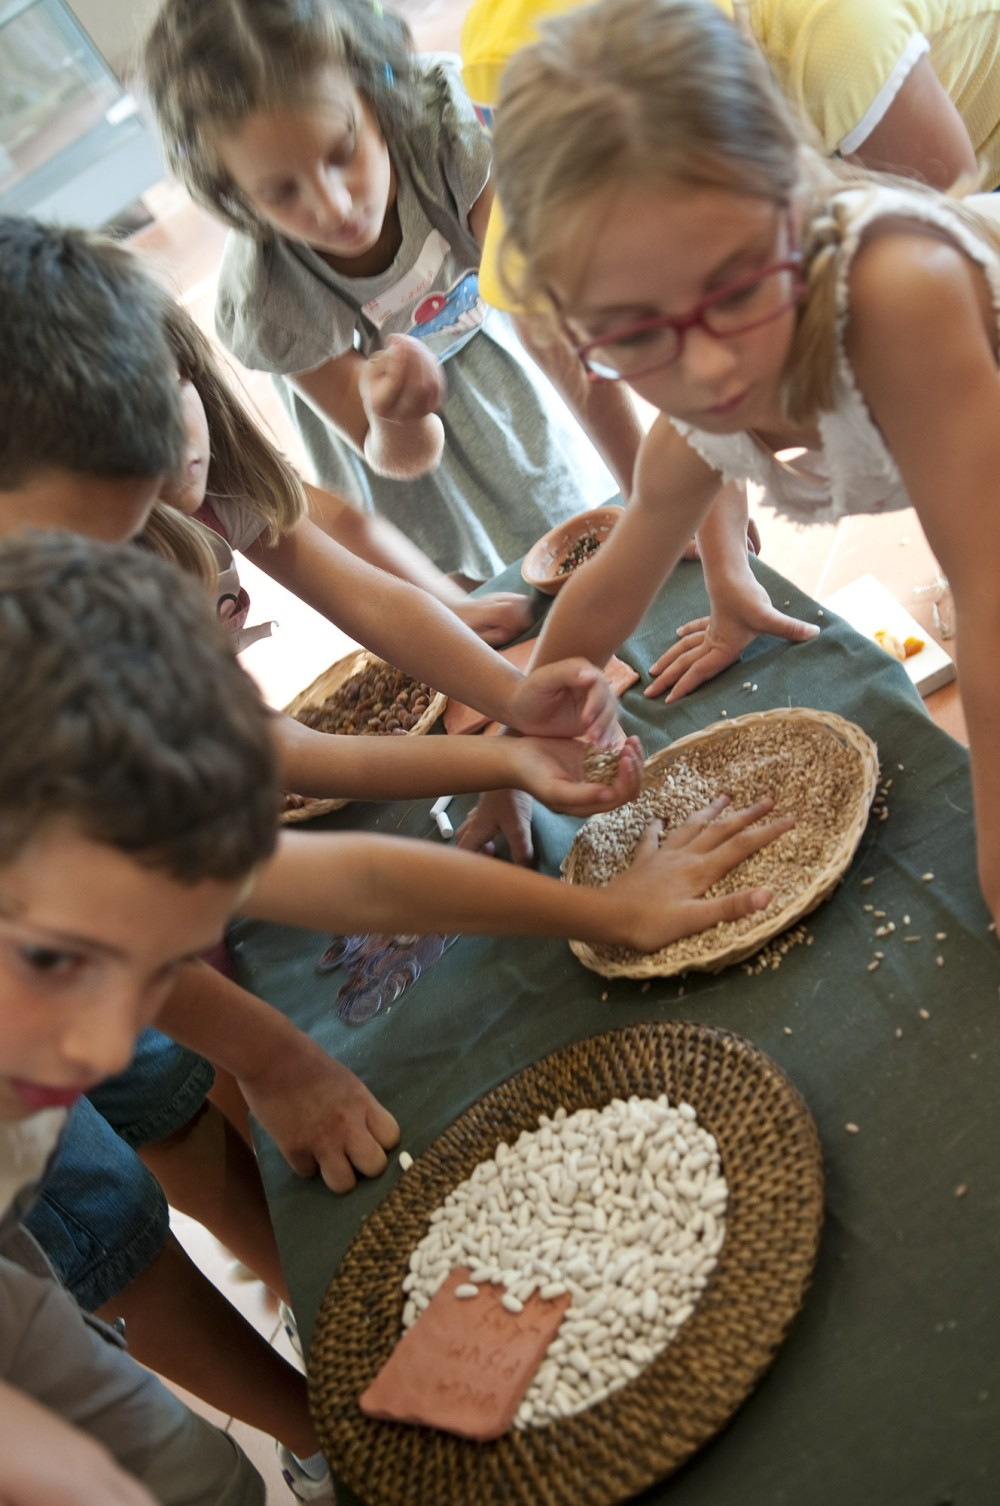 At Aquileia Lab, you can cook a meal with cereals with thousands-year-old techniques. – © Gianluca Baronchelli